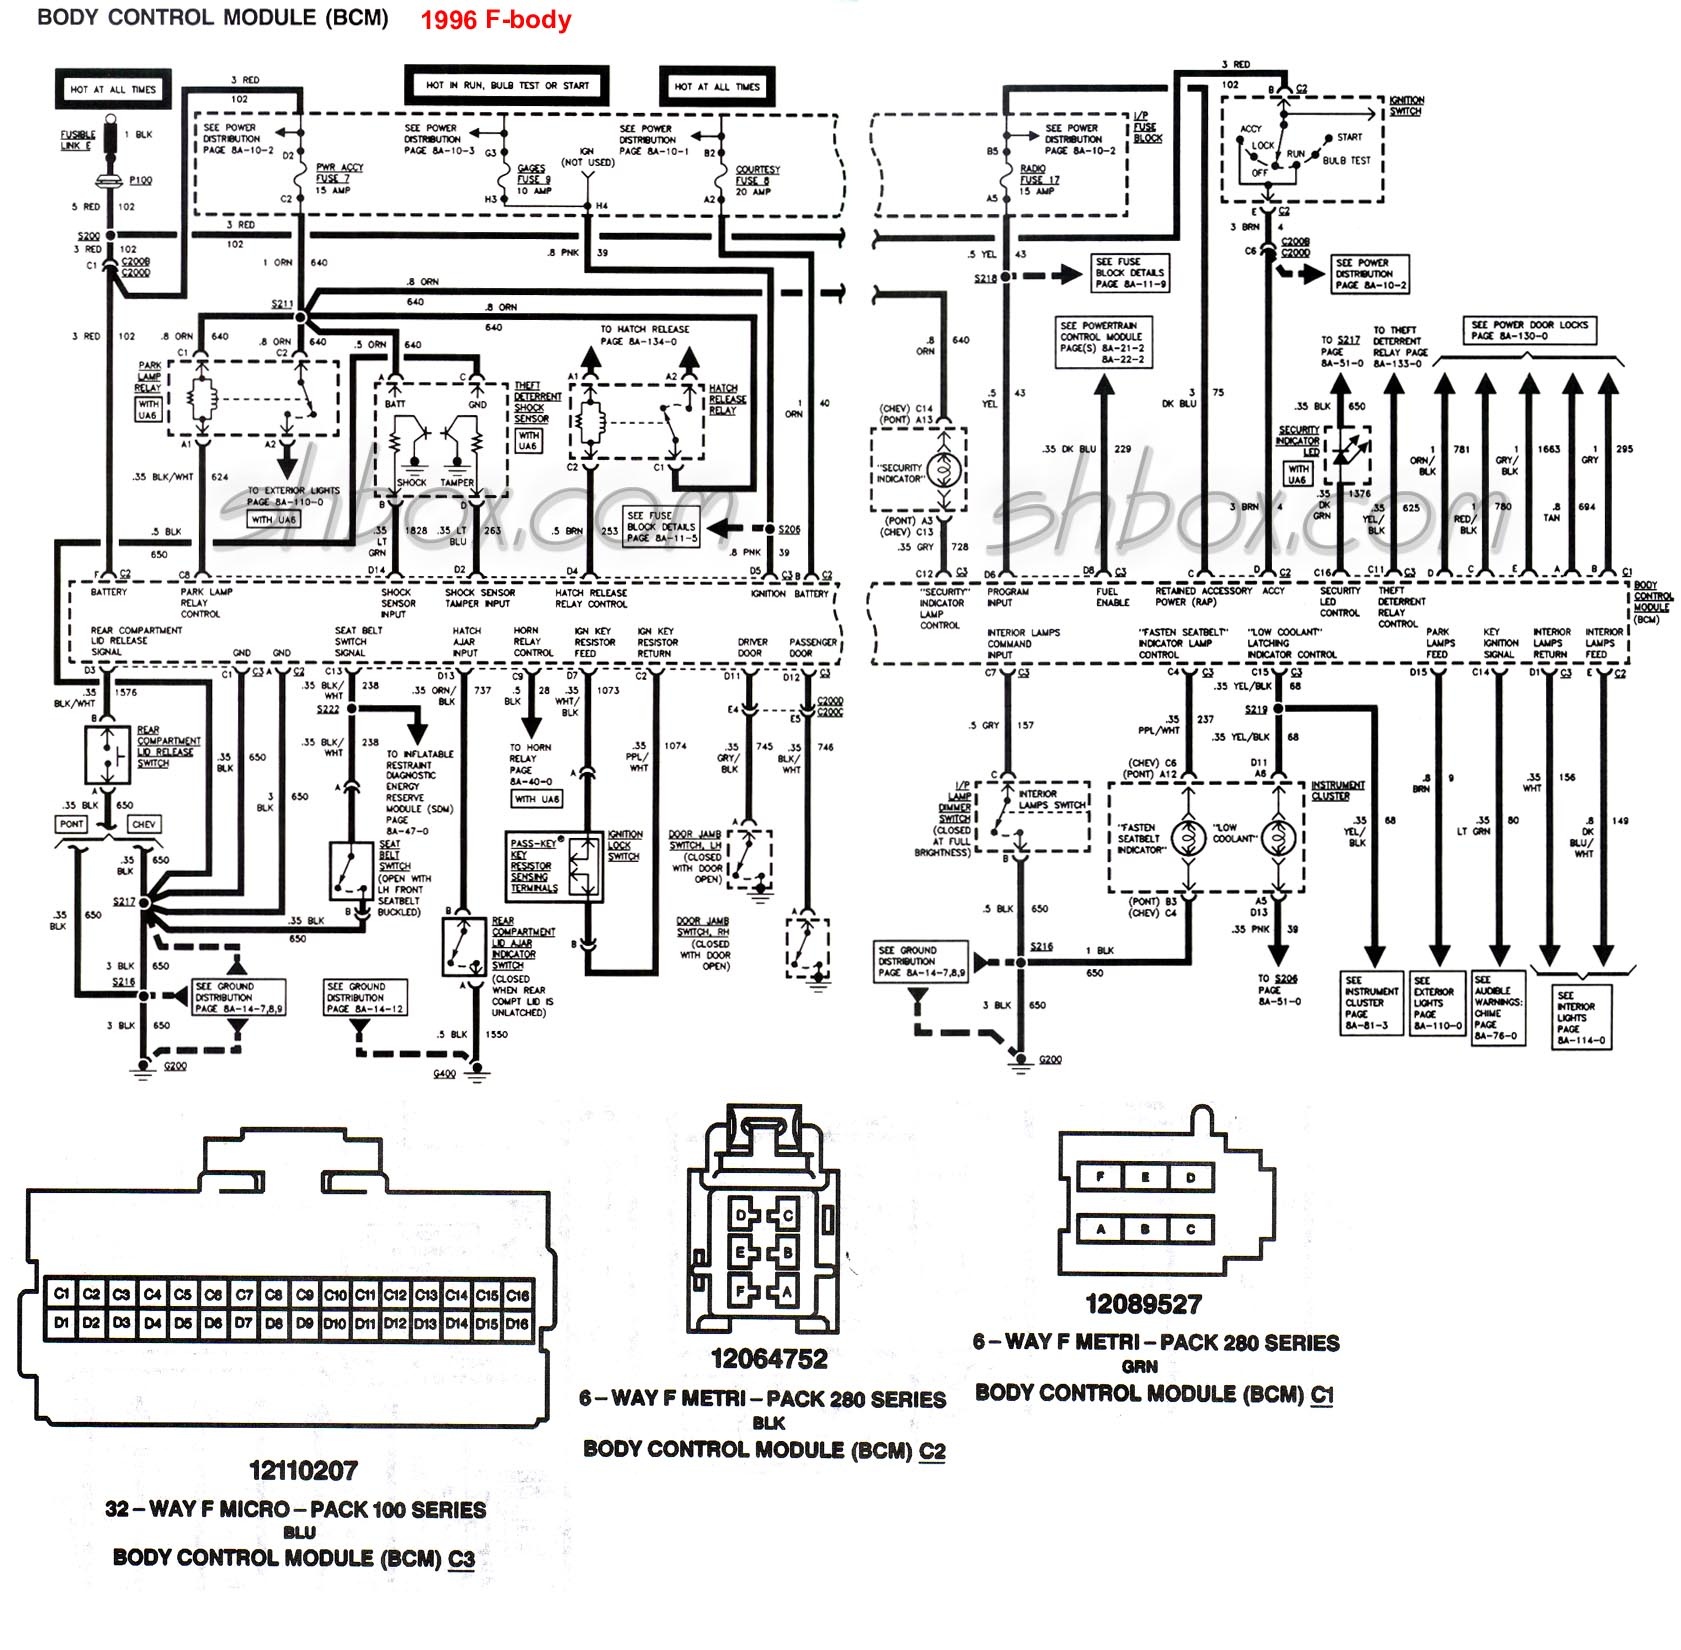 hight resolution of wiring diagram 96 chevy 1500 wiring diagram schematics f150 wiring schematic 1996 chevy truck wiring diagram